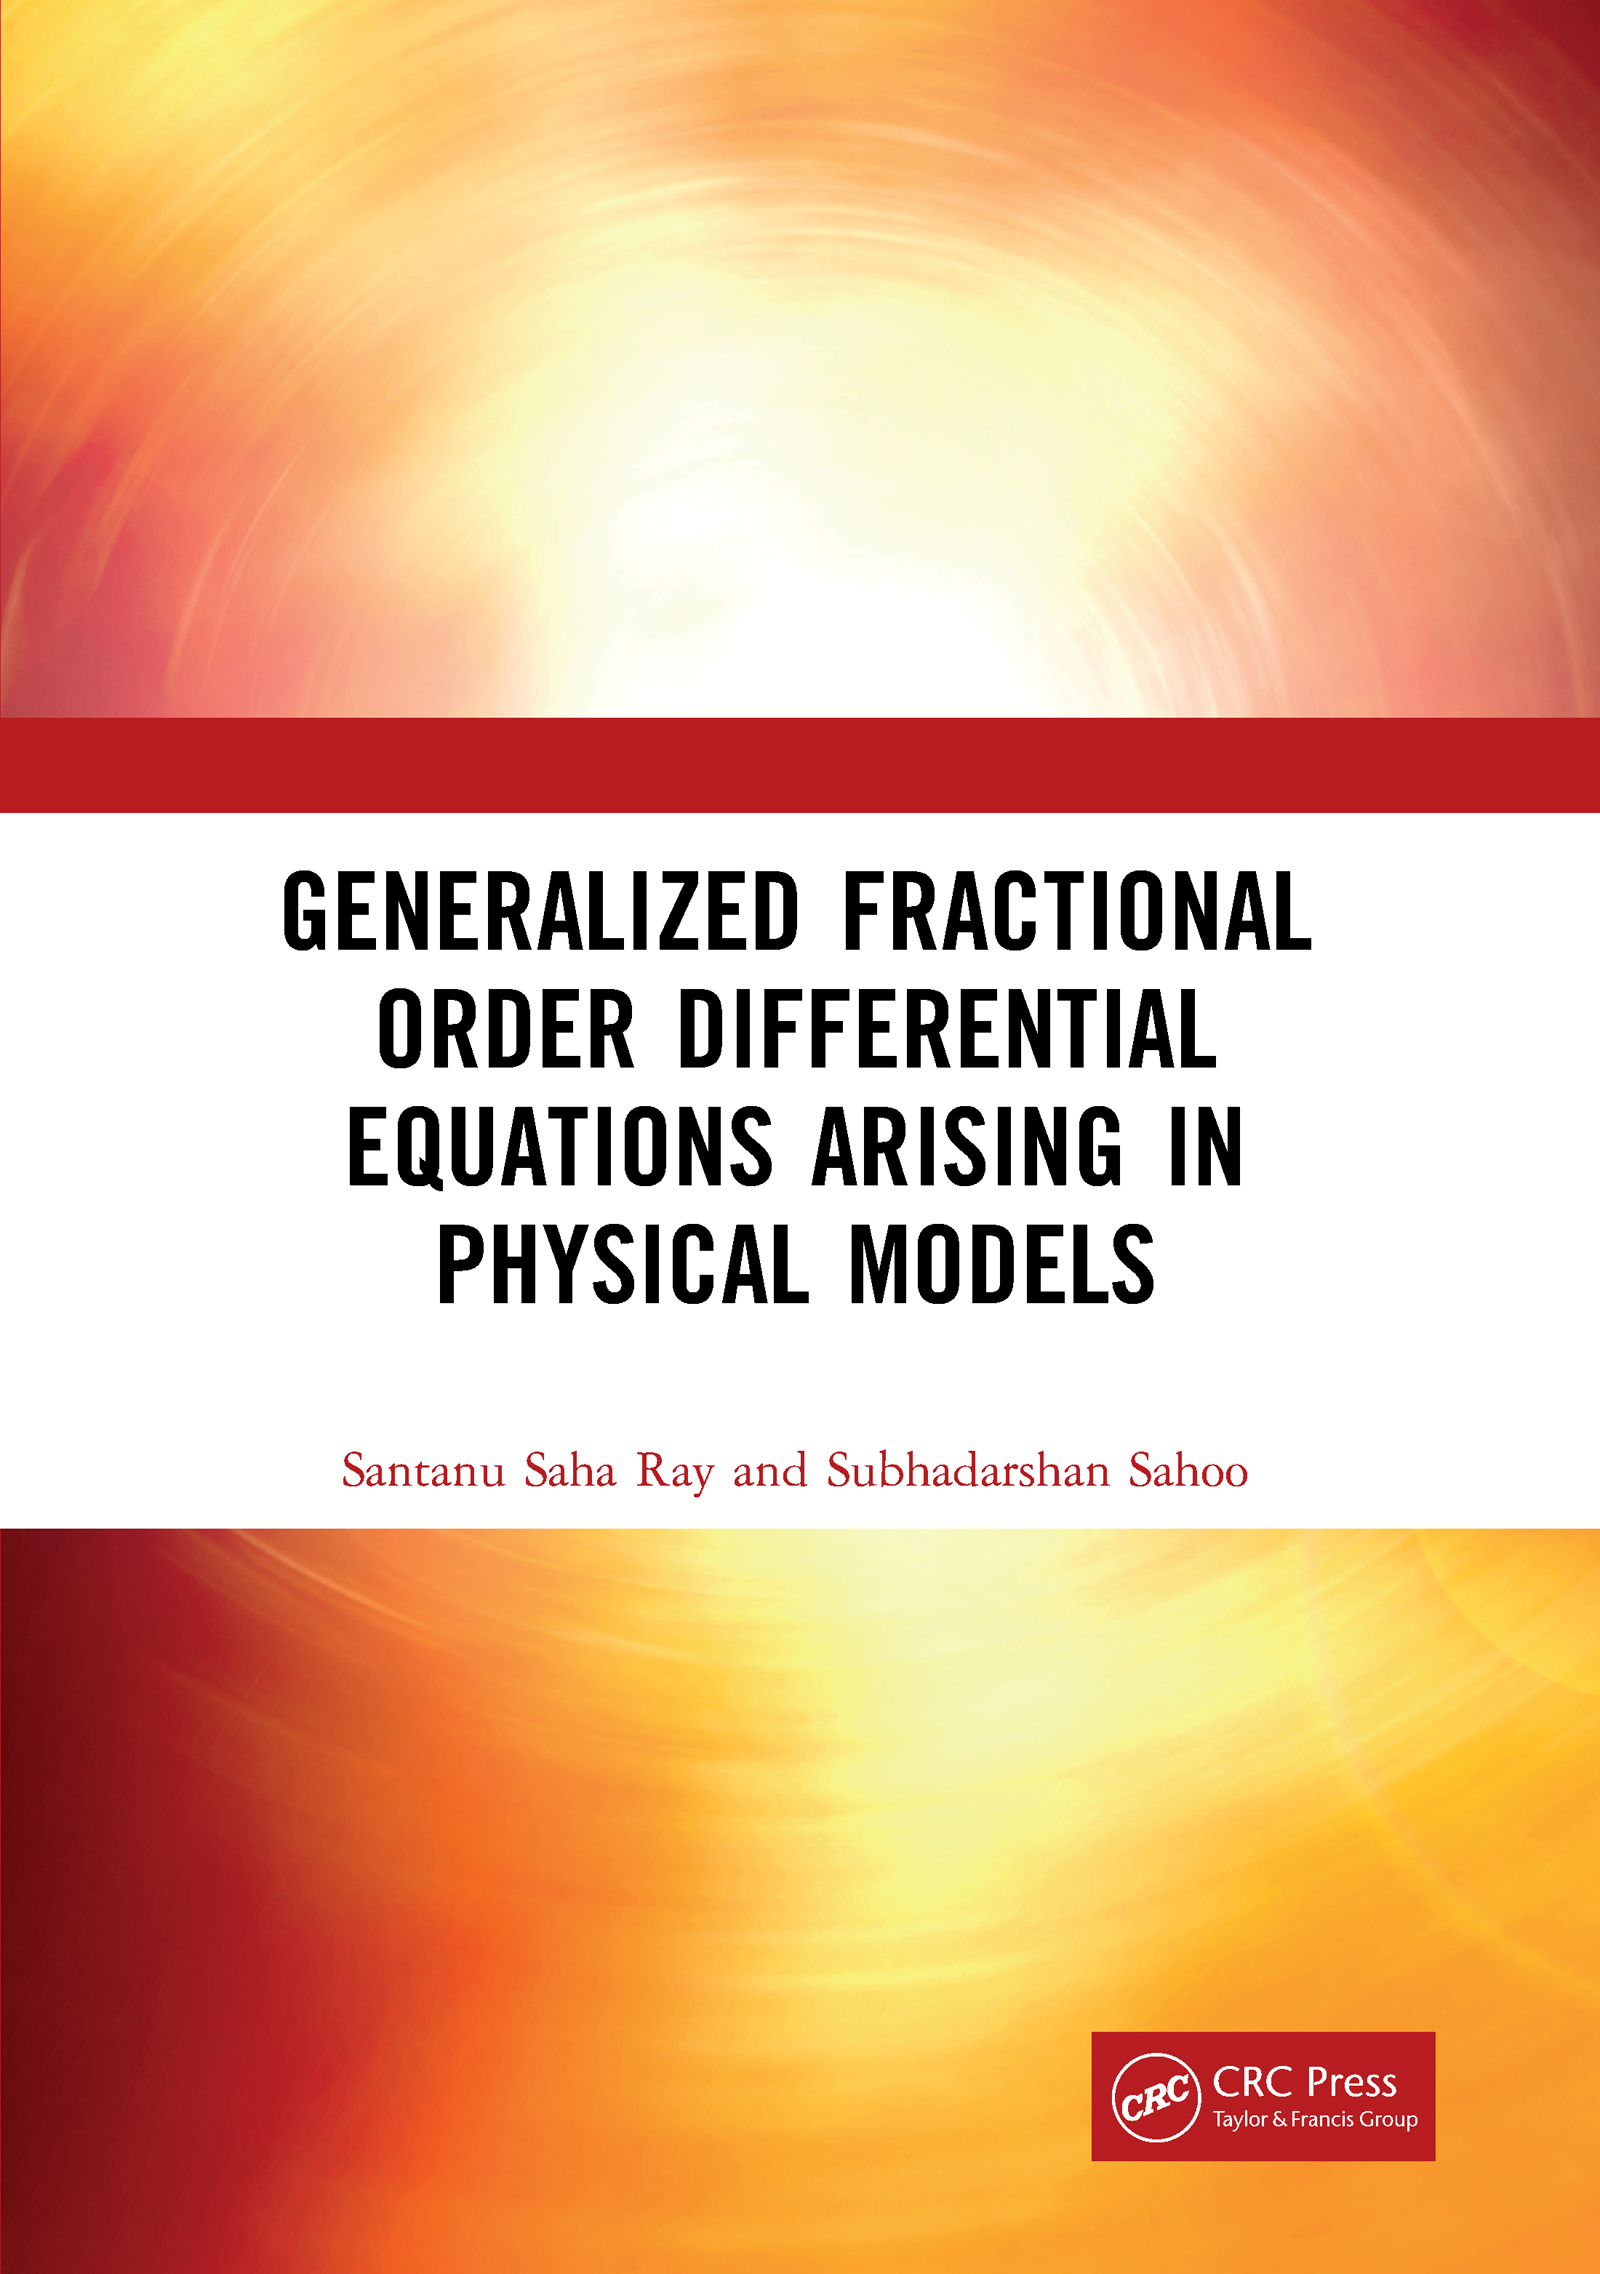 Generalized Fractional Order Differential Equations Arising in Physical Models